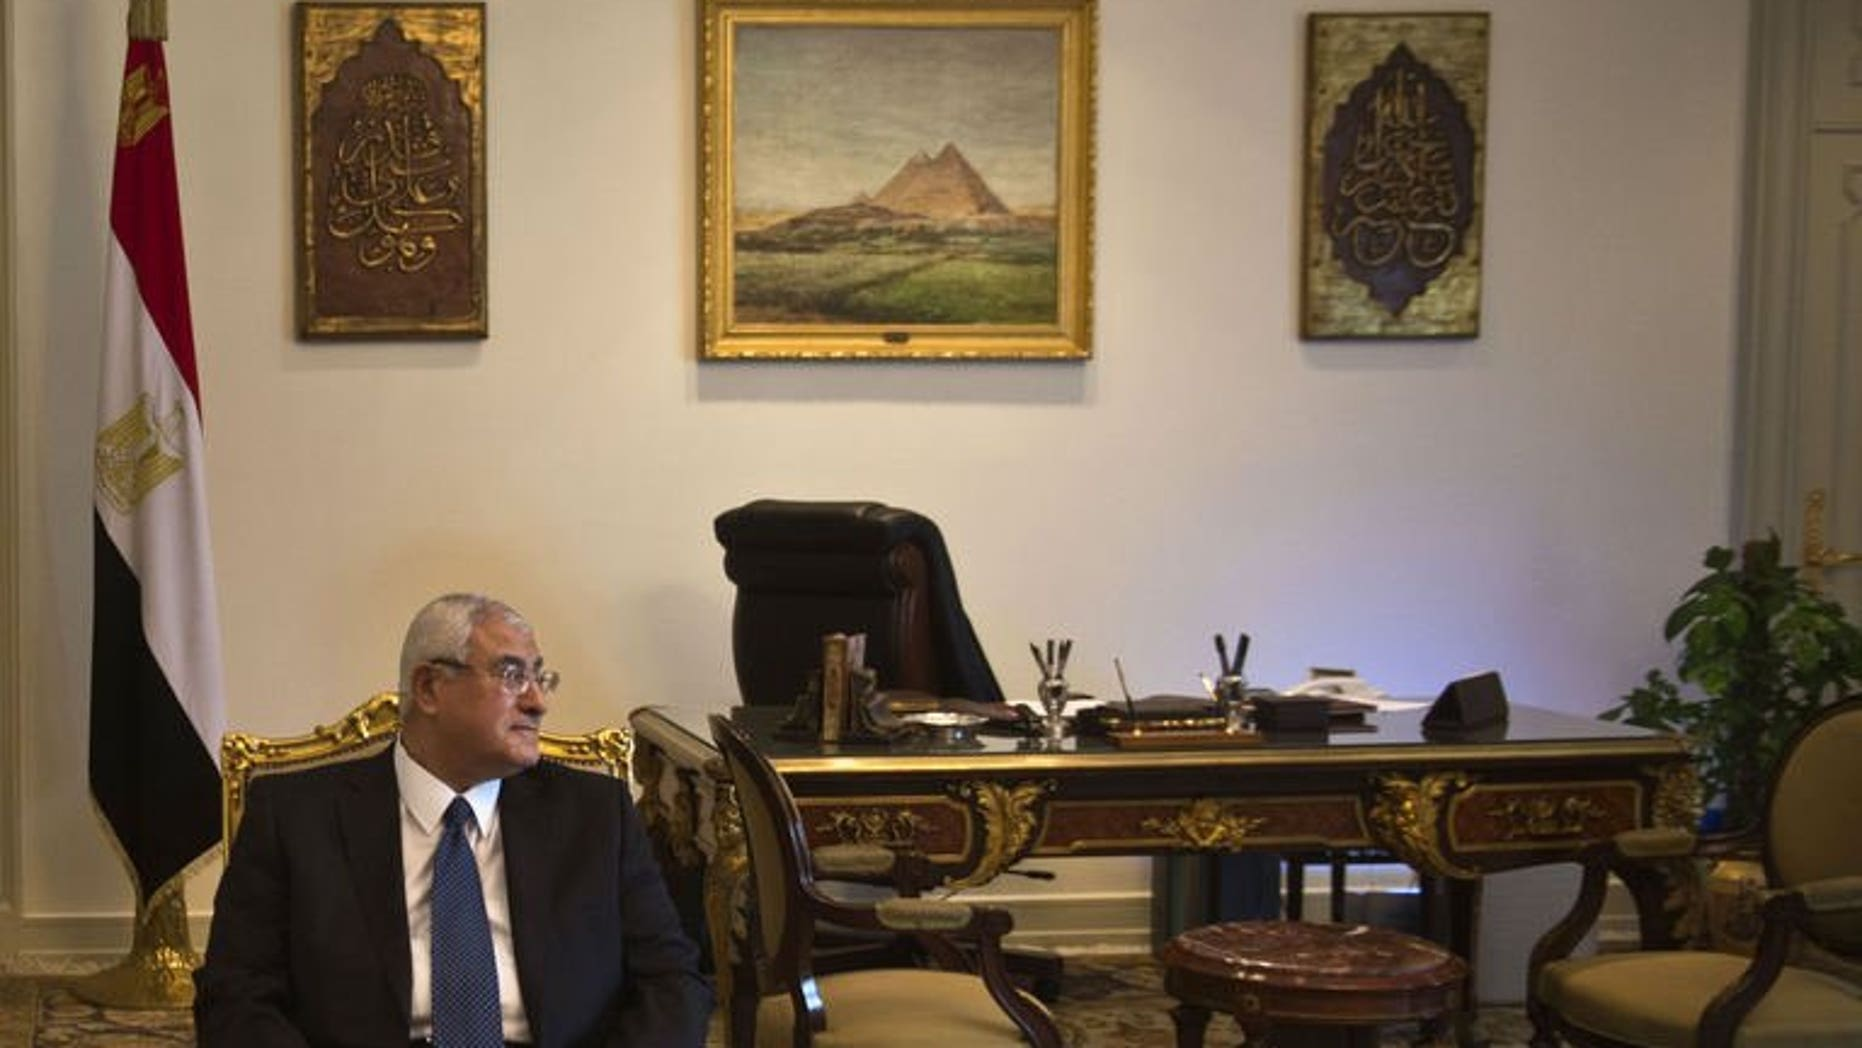 Egypt's interim president Adly Mansour, pictured in Cairo on July 15, 2013, appointed a committee of experts to amend the constitution that was suspended following the military's overthrow of president Mohamed Morsi, the presidency said.